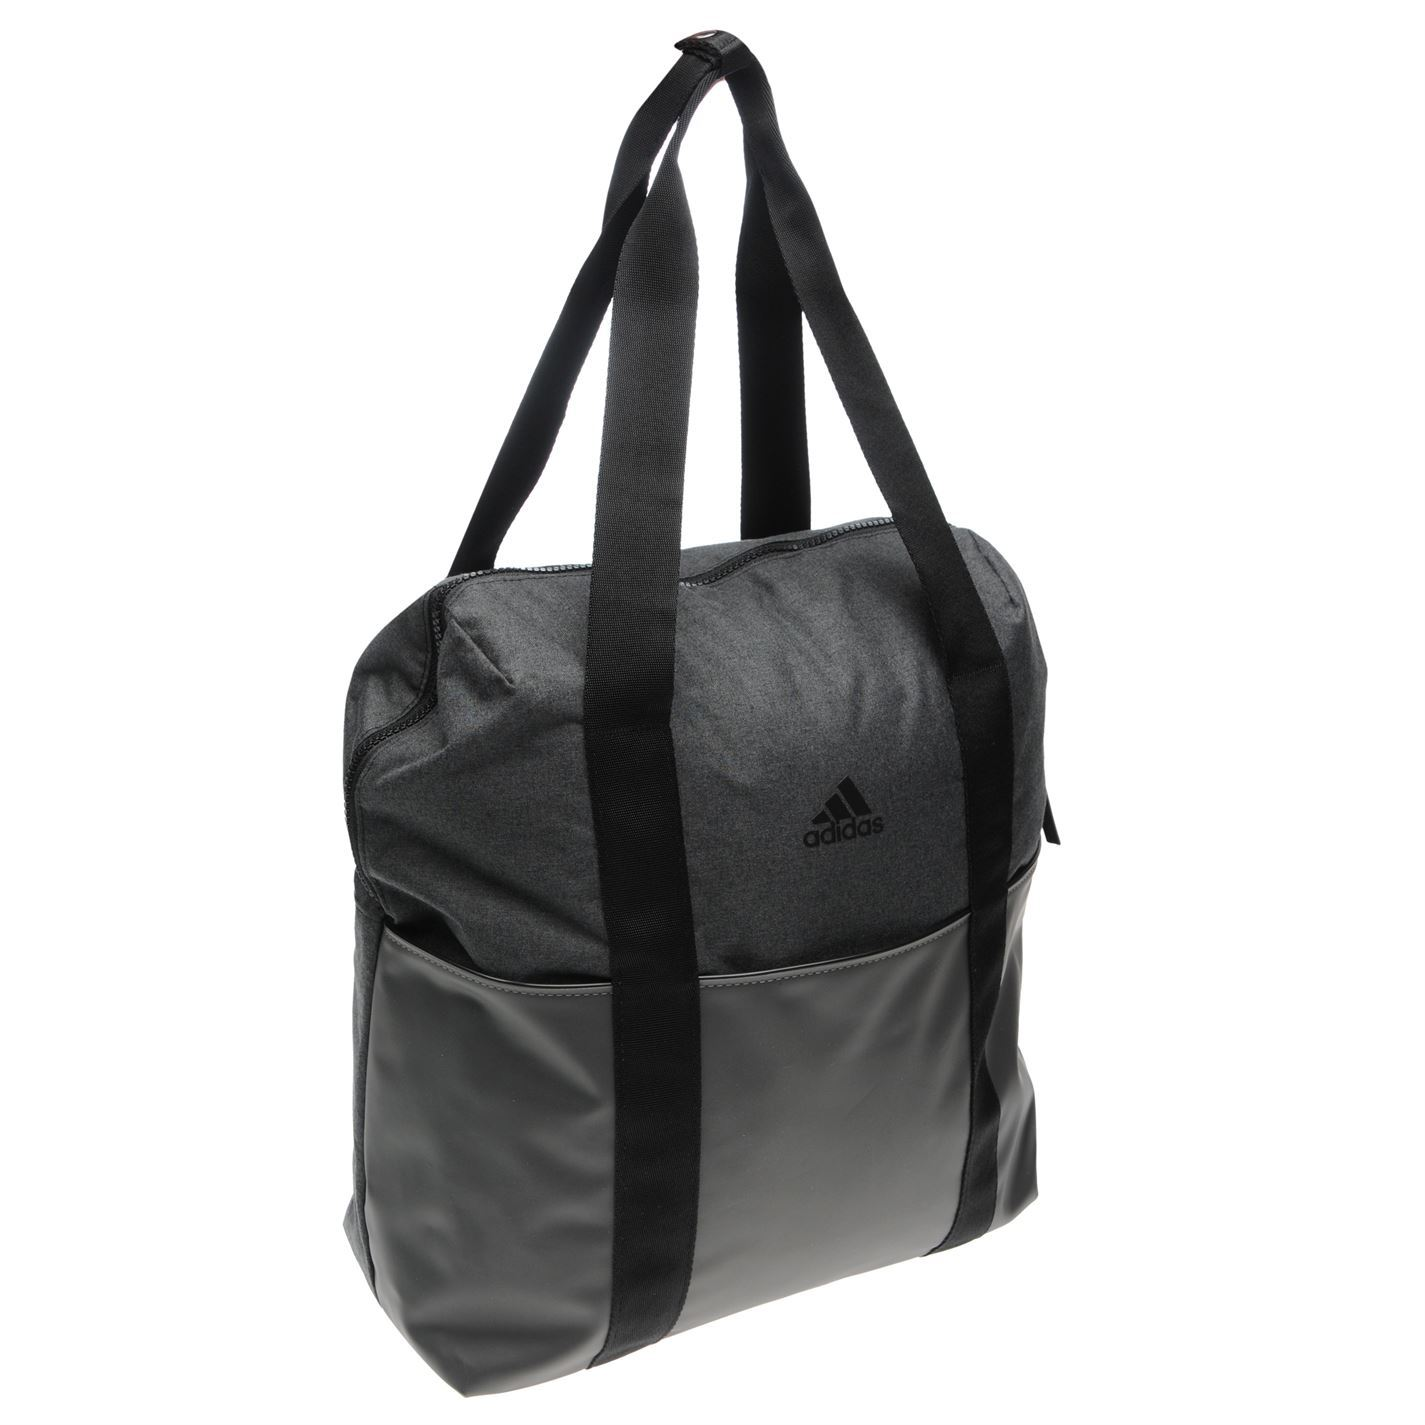 d618a607a0 This adidas Training ID Tote Bag is perfect for taking to the gym thanks to  the large main compartment